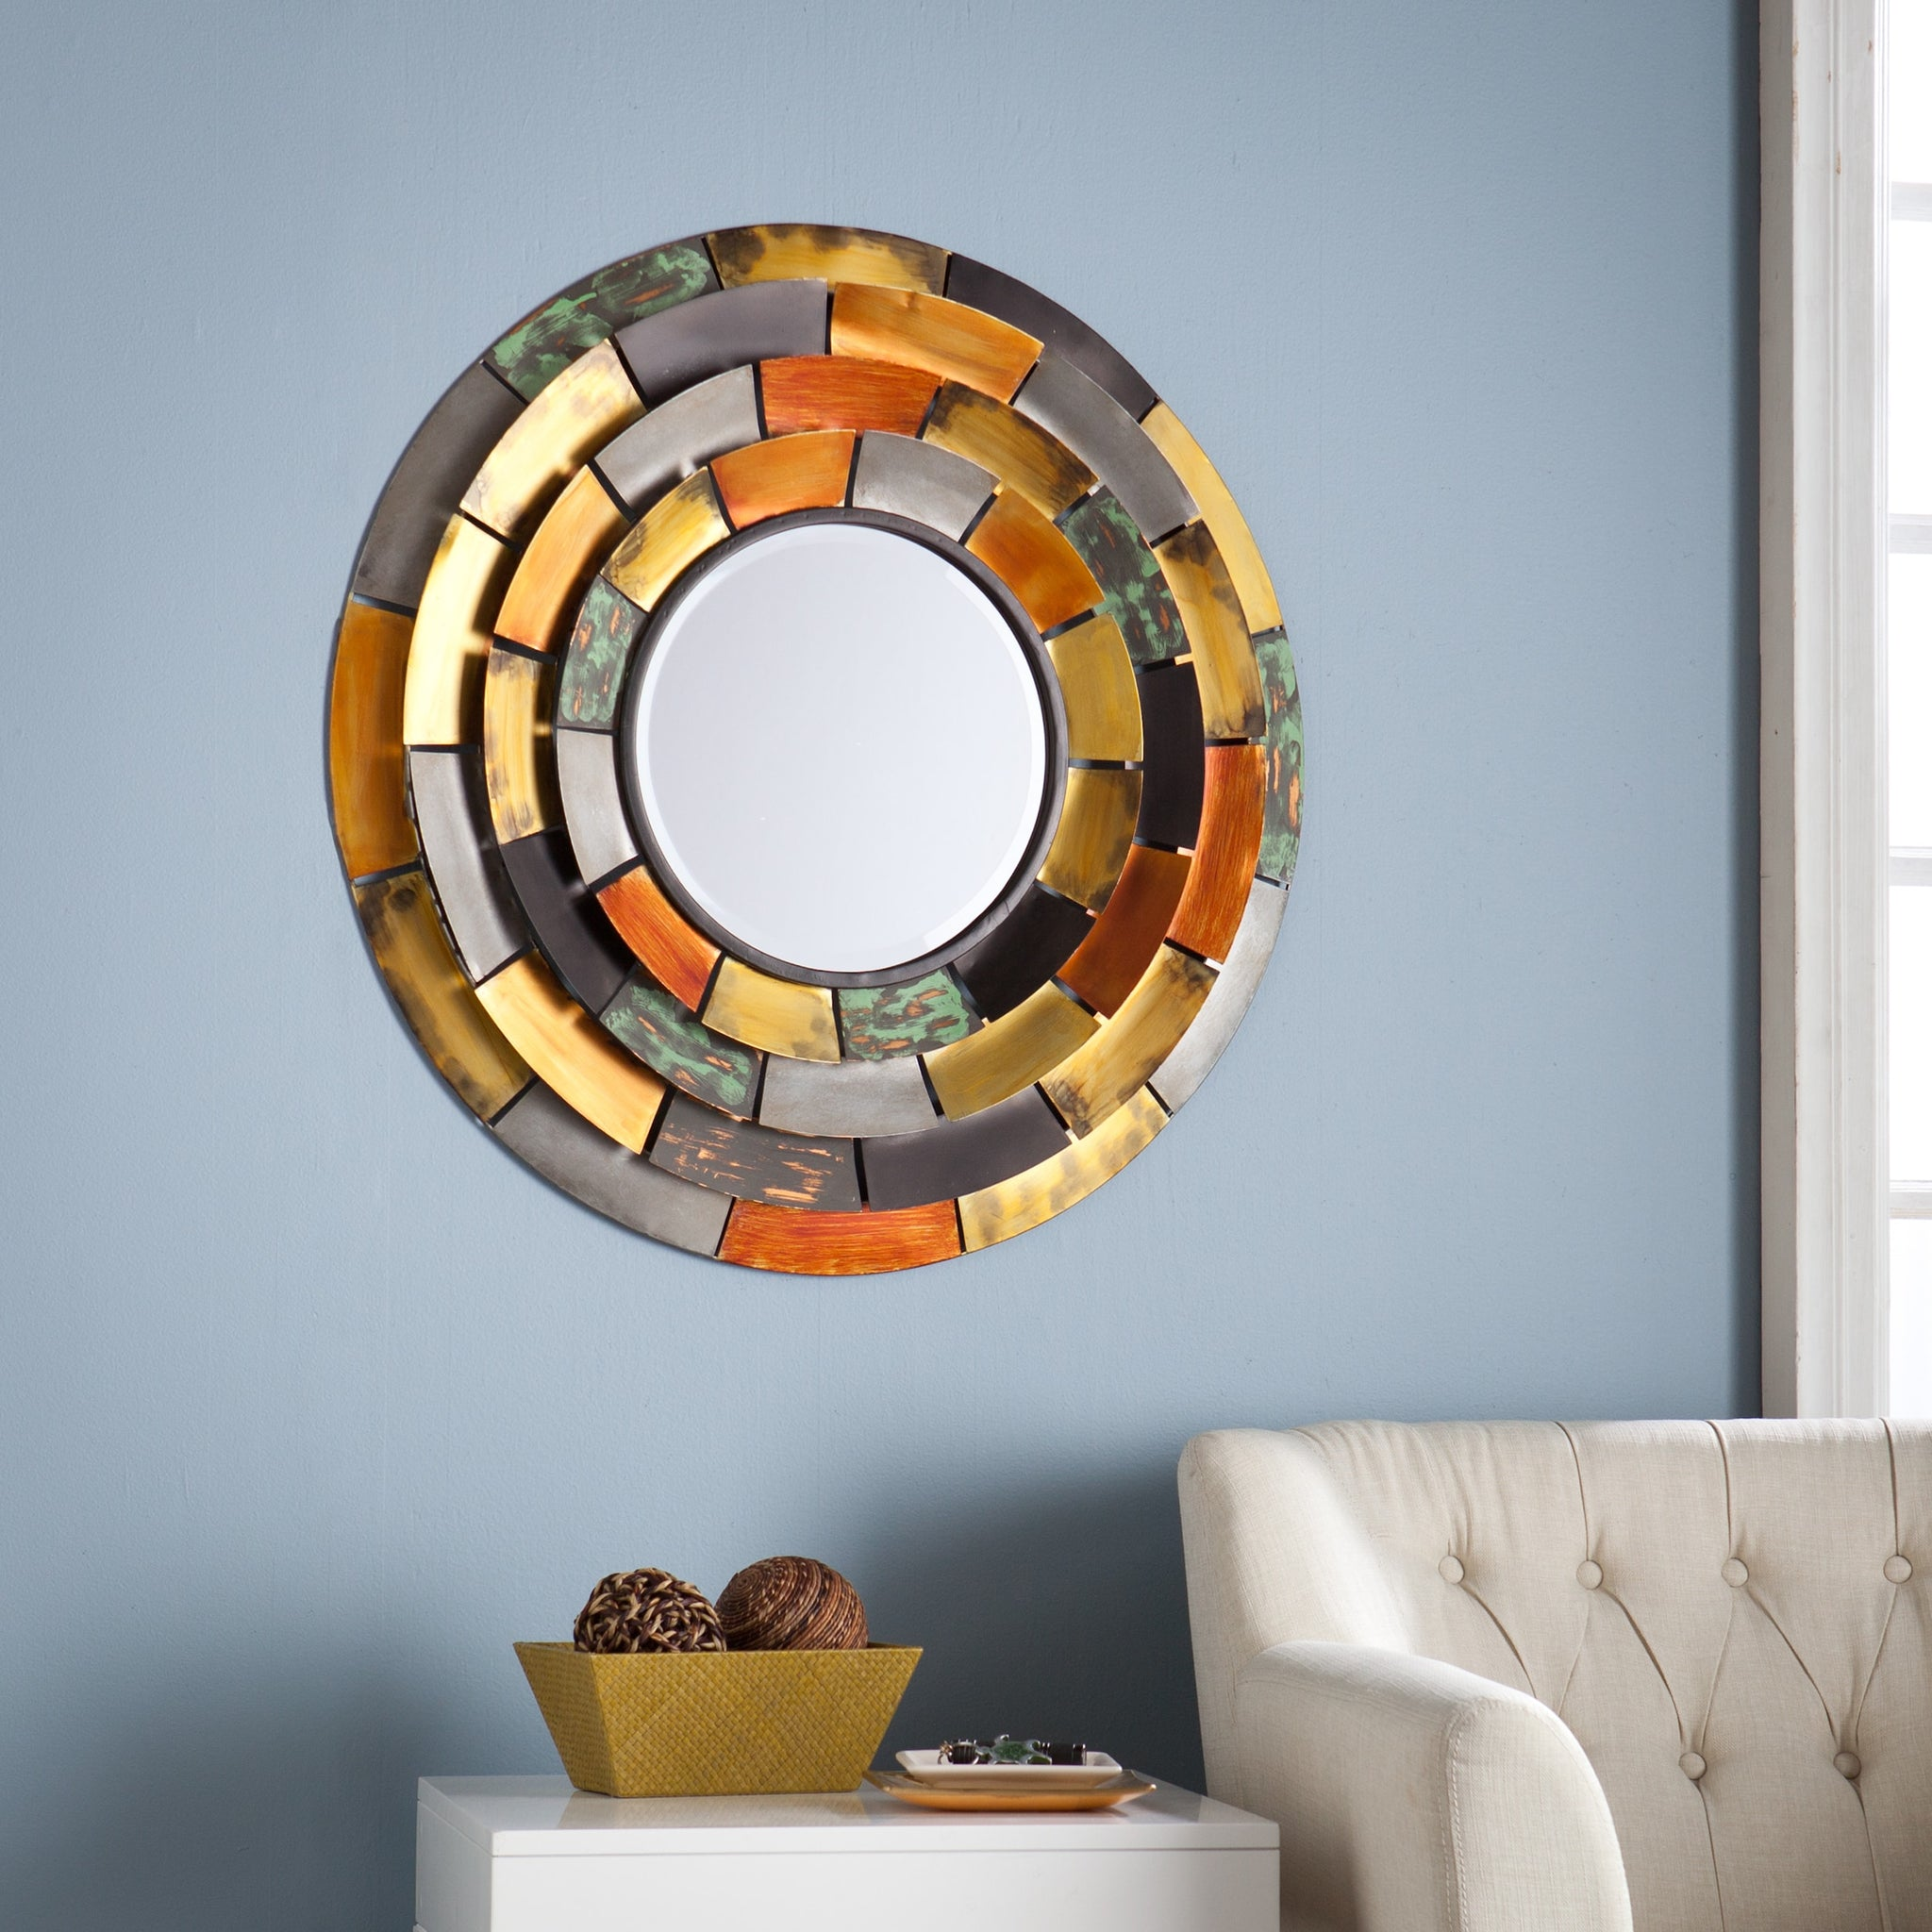 Decorative Wall Mirror with Tiered Edges